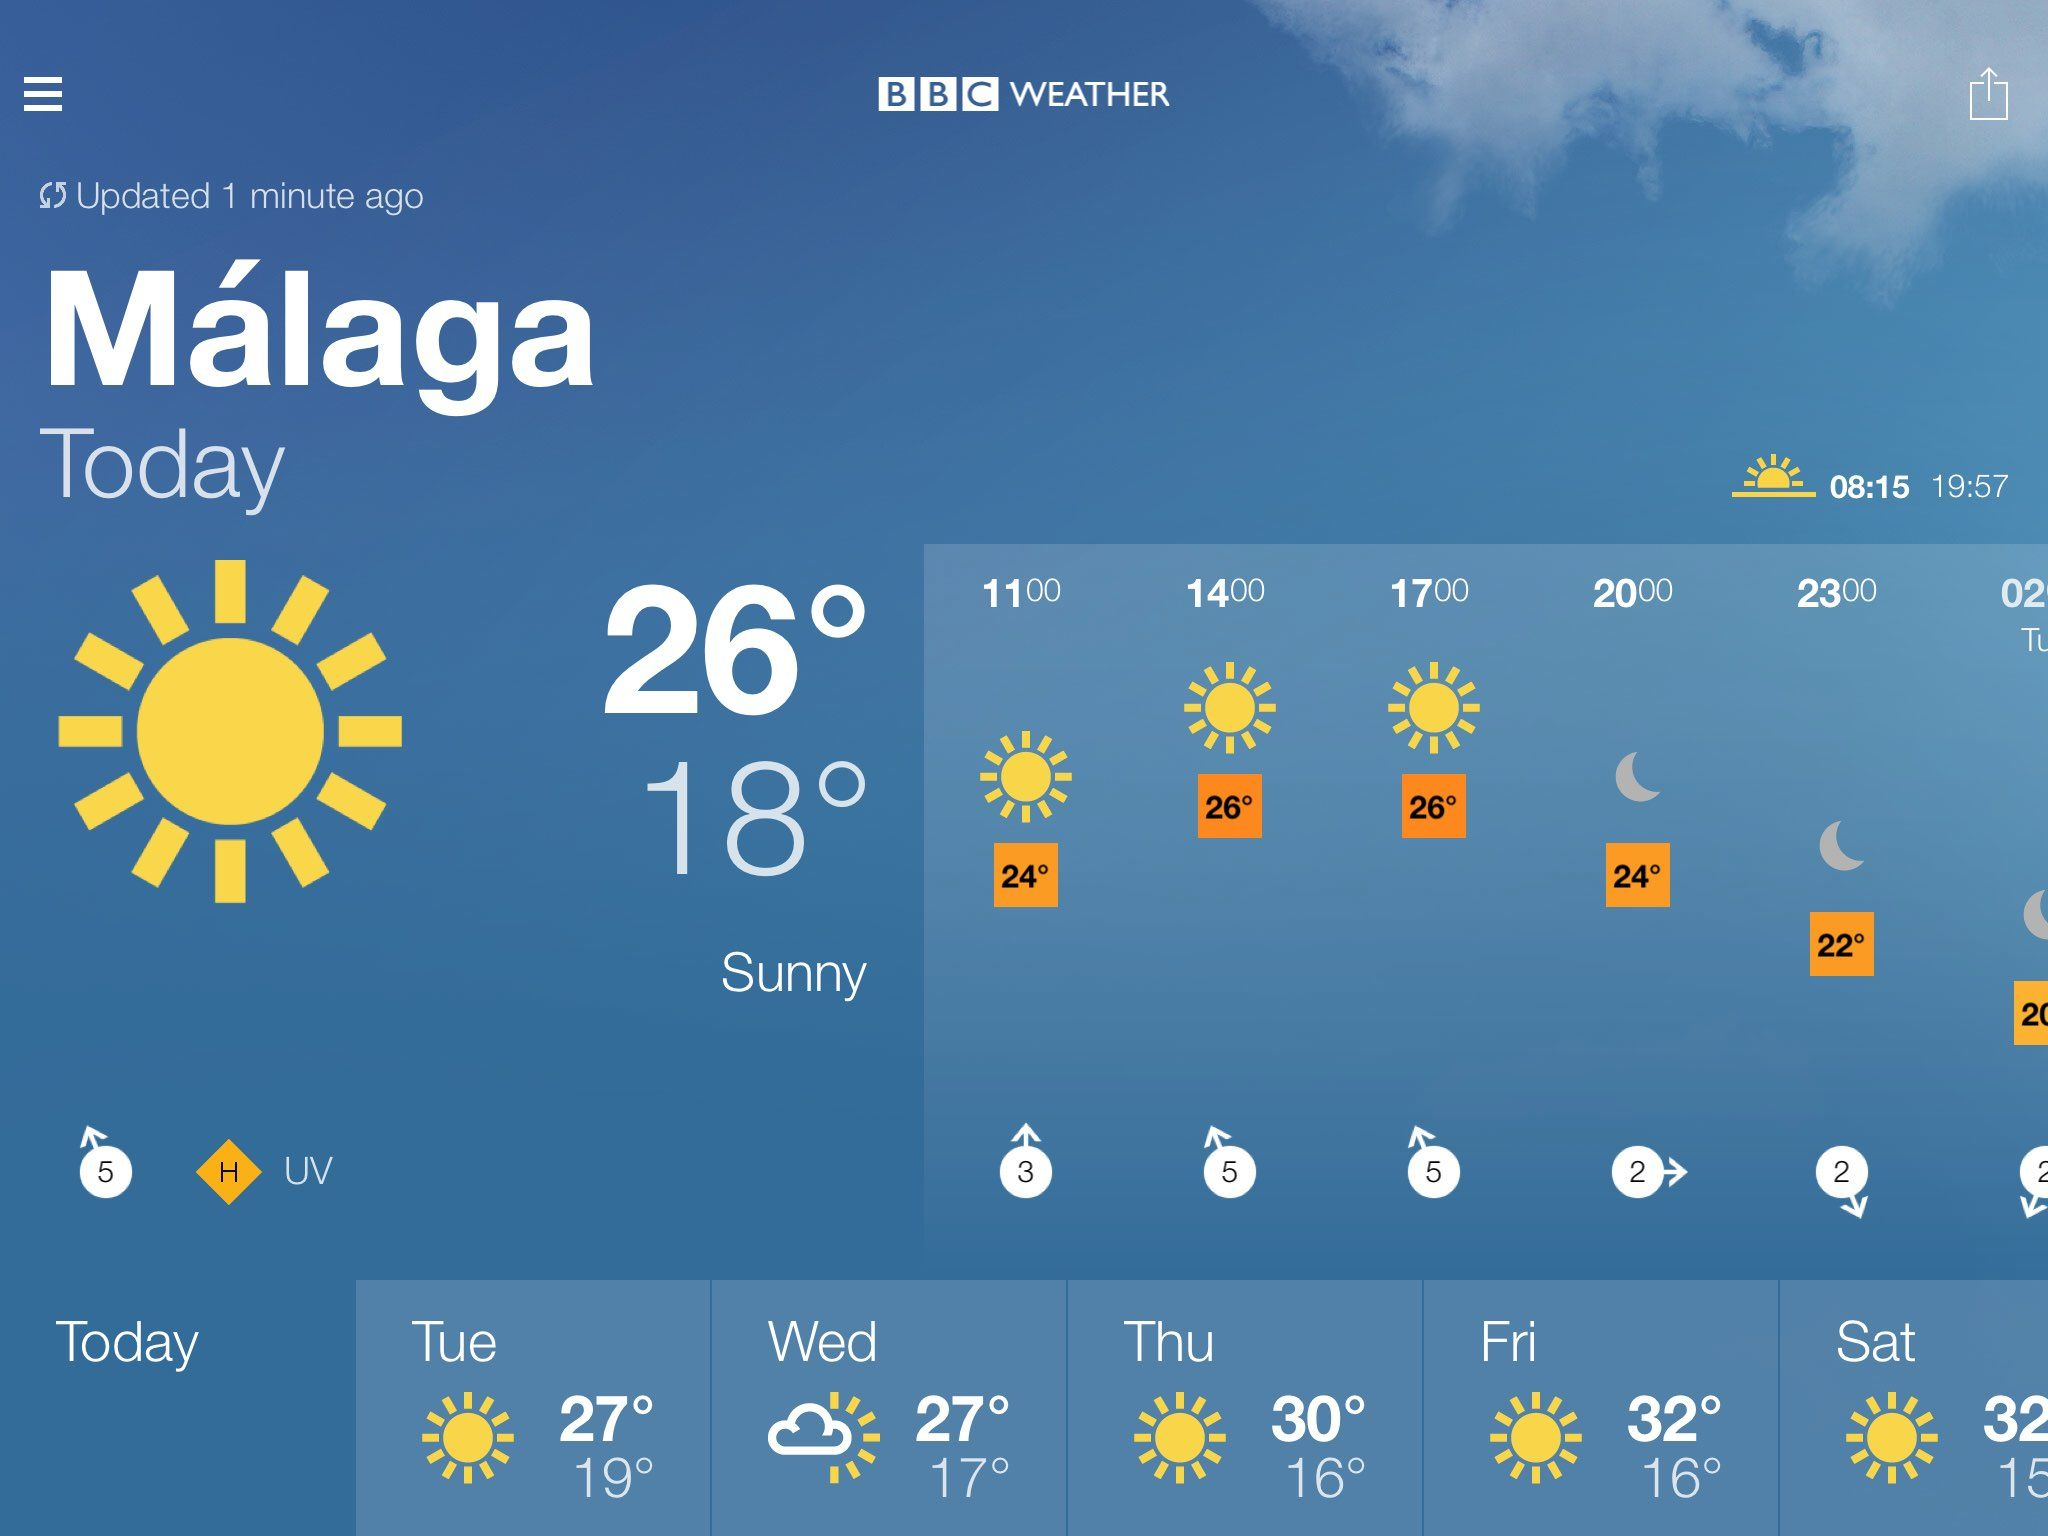 Bbc Weather Forecast For Malaga Spain Today Sunny Max